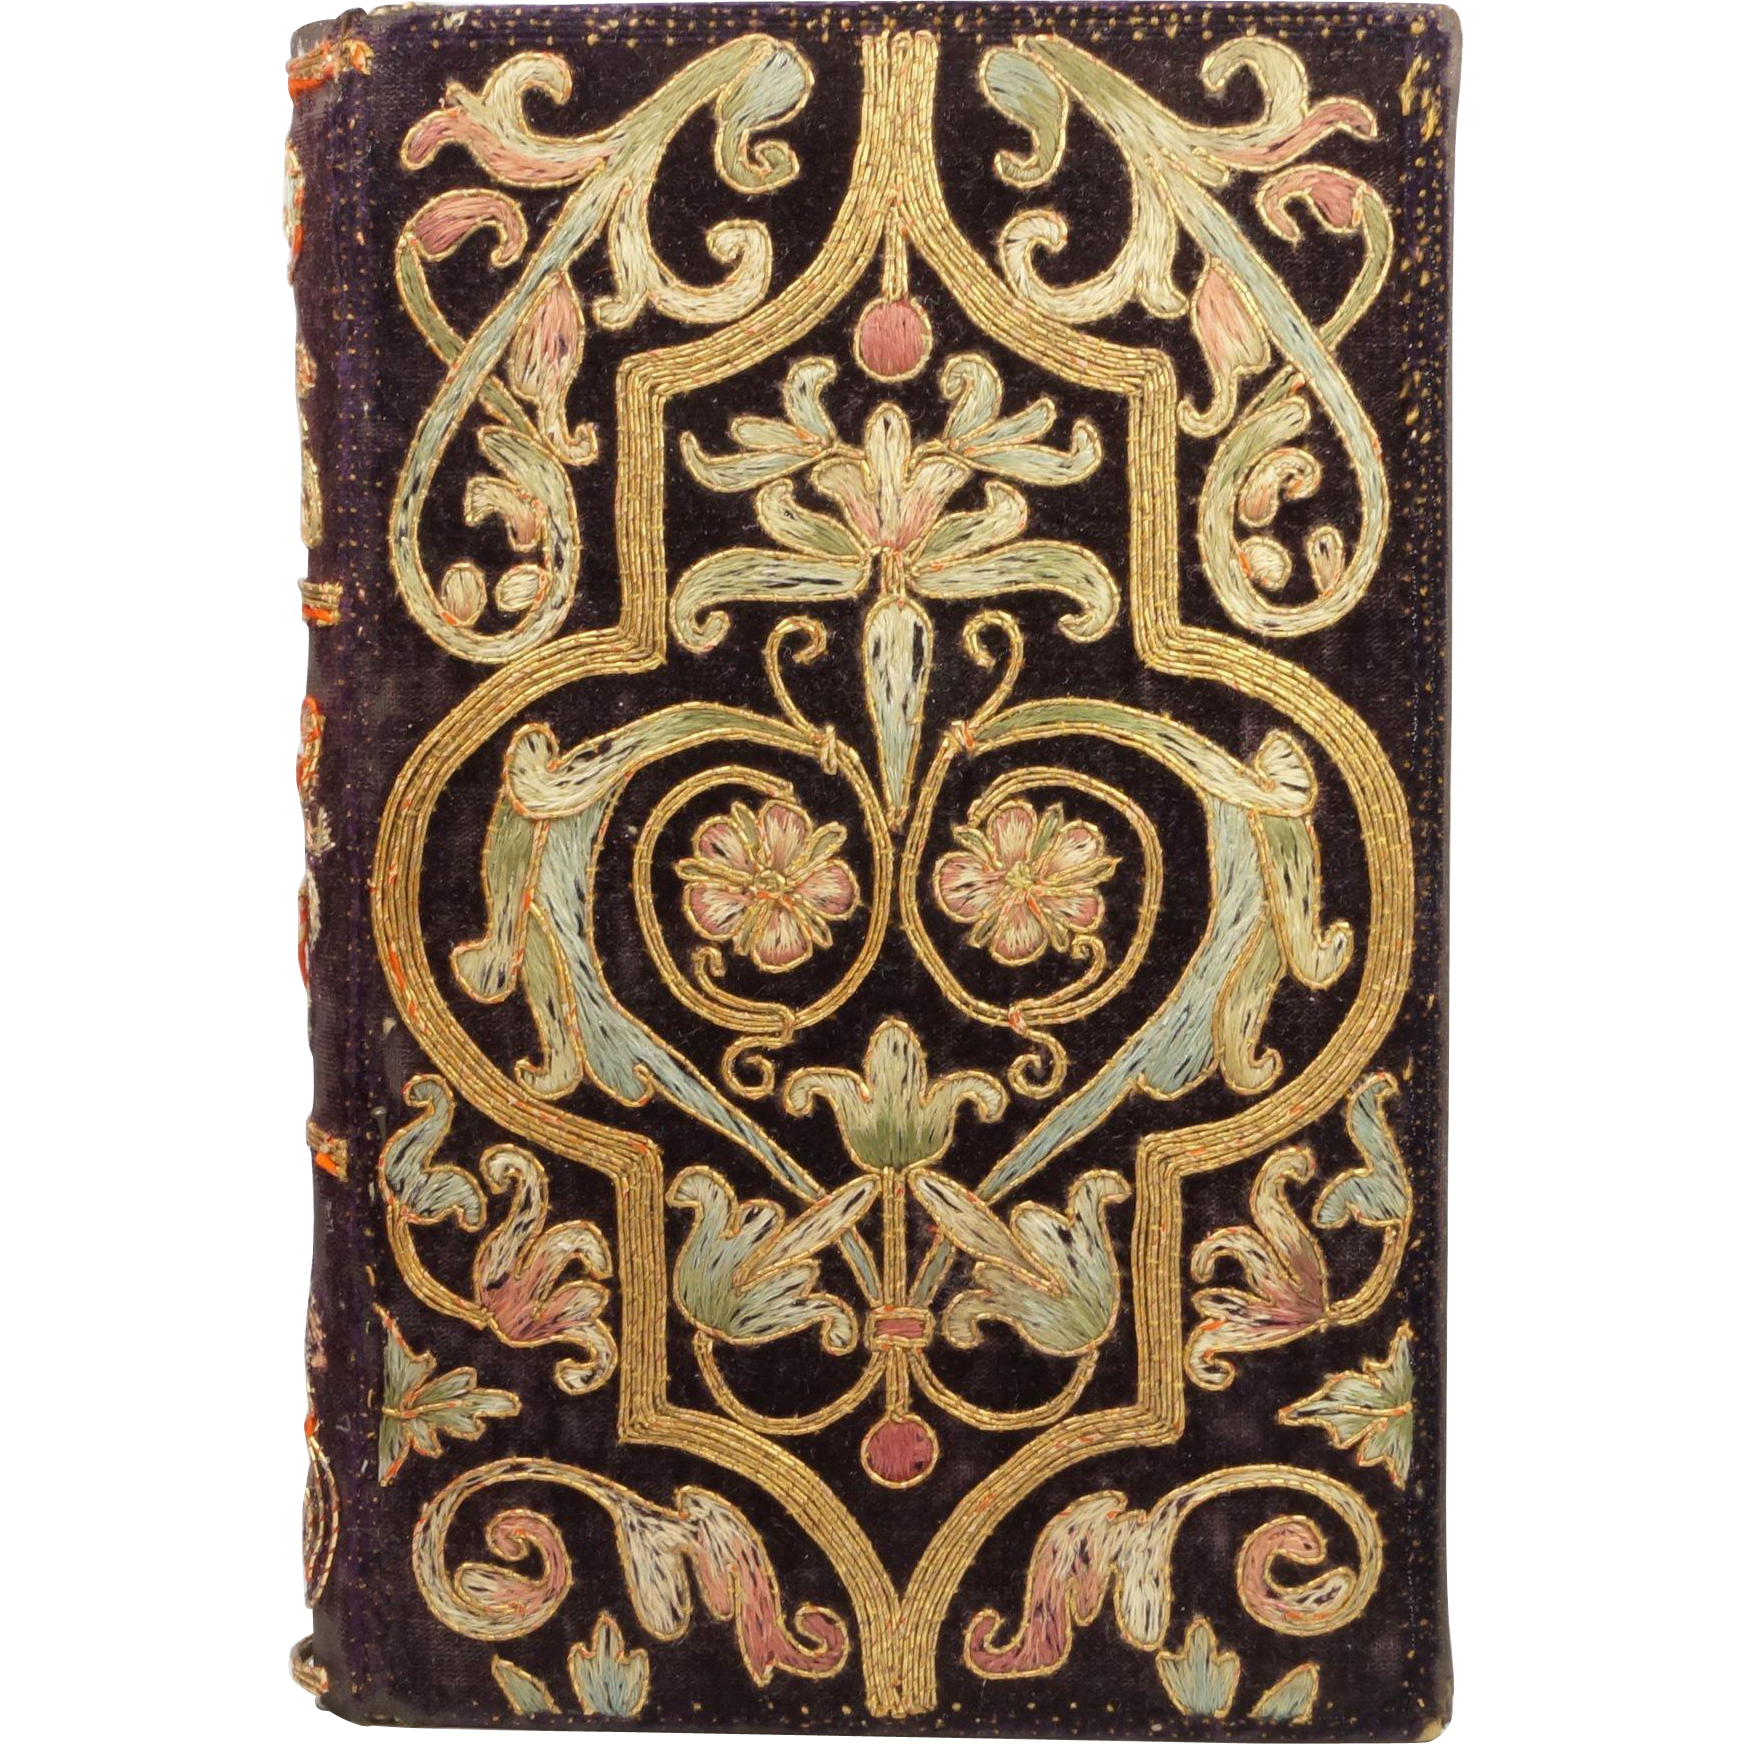 19th Century Embroidered Bookbinding The Holy Grail Alfred Tennyson 1870  Rare Embroidered Book Cover